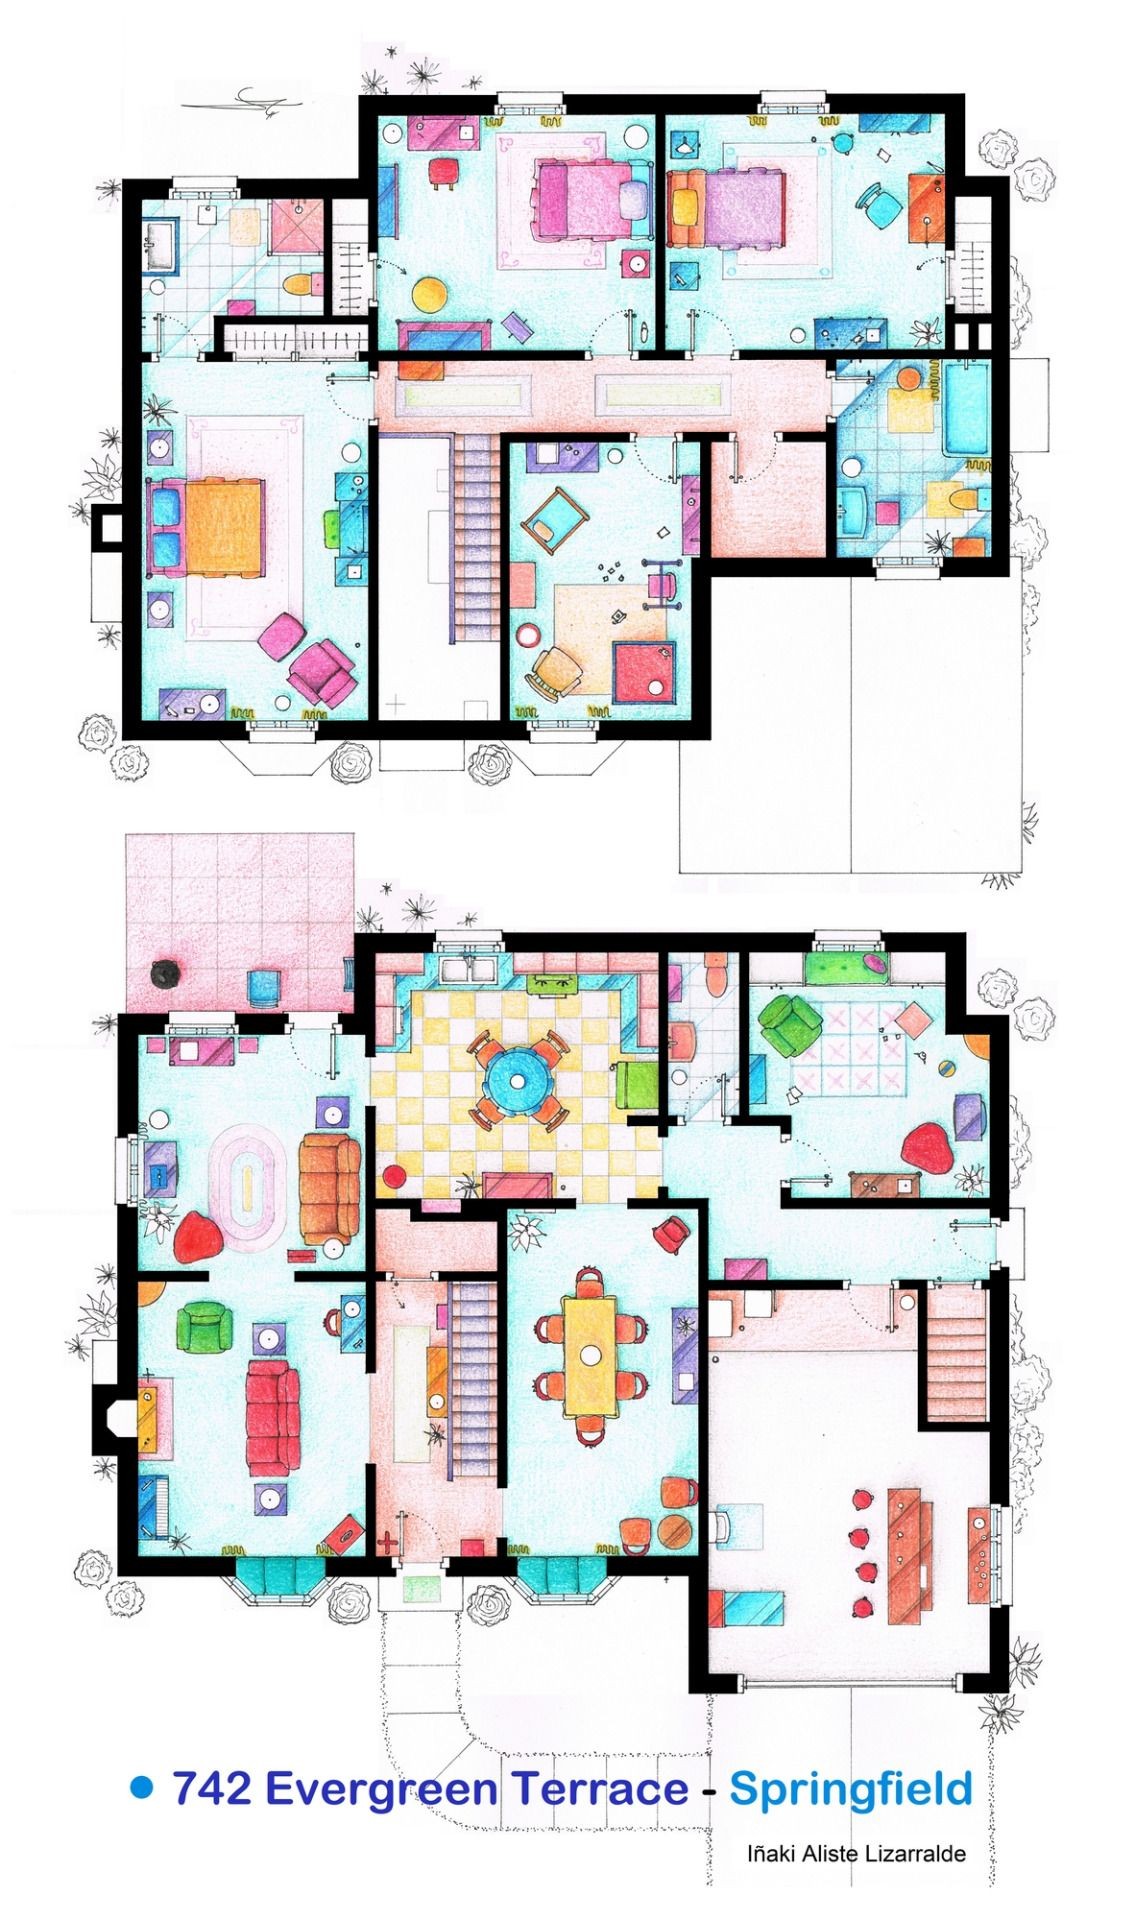 0debd9cadefd88b998b60f219ed7b947 These Are The Floorplans Of The Simpson Family House From The Tv On Create Your